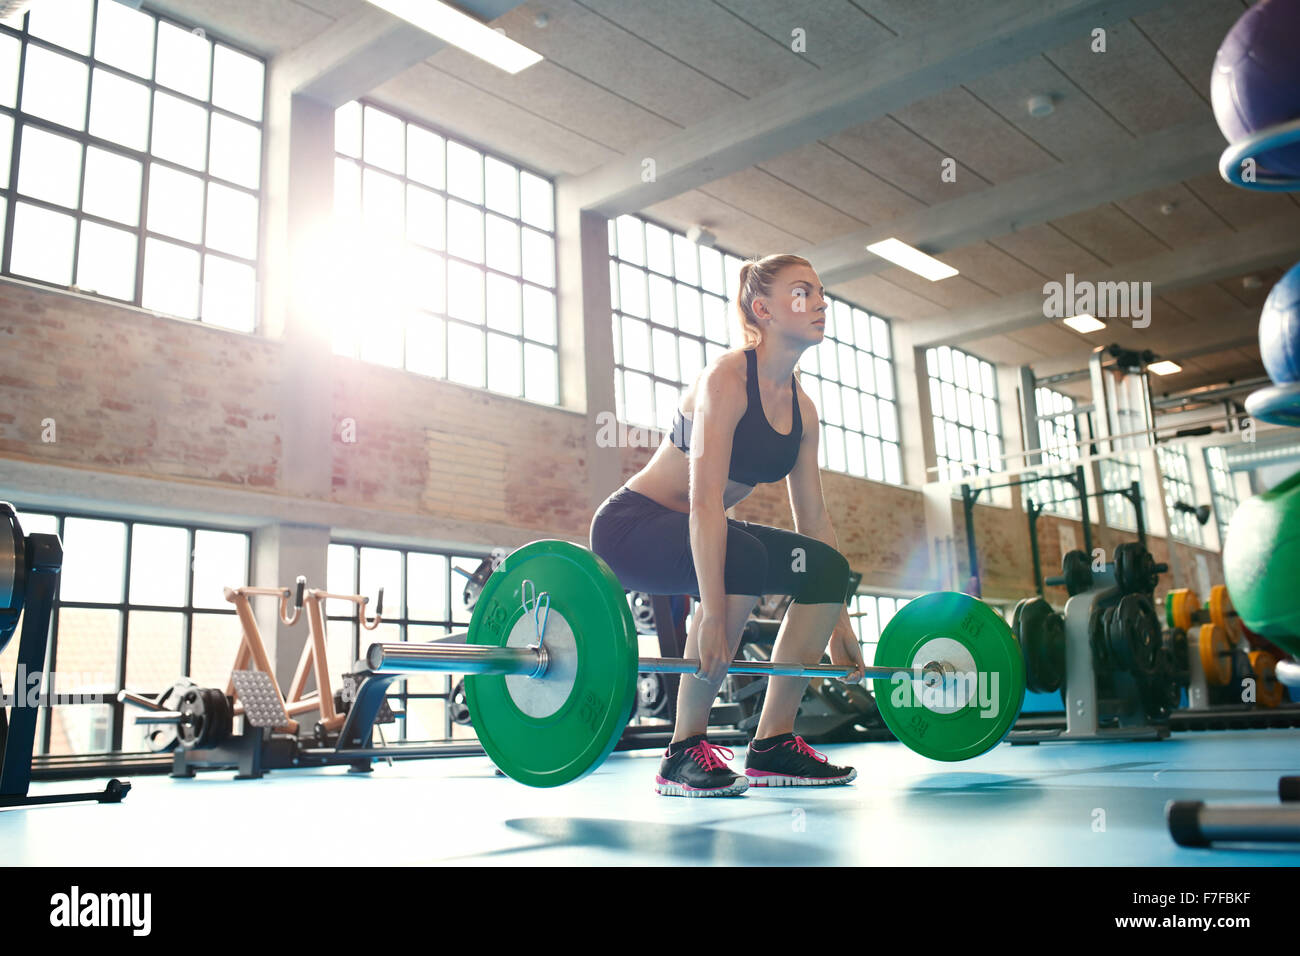 Young woman working hard in the gym. Fit female athlete lifting weights in health club. - Stock Image